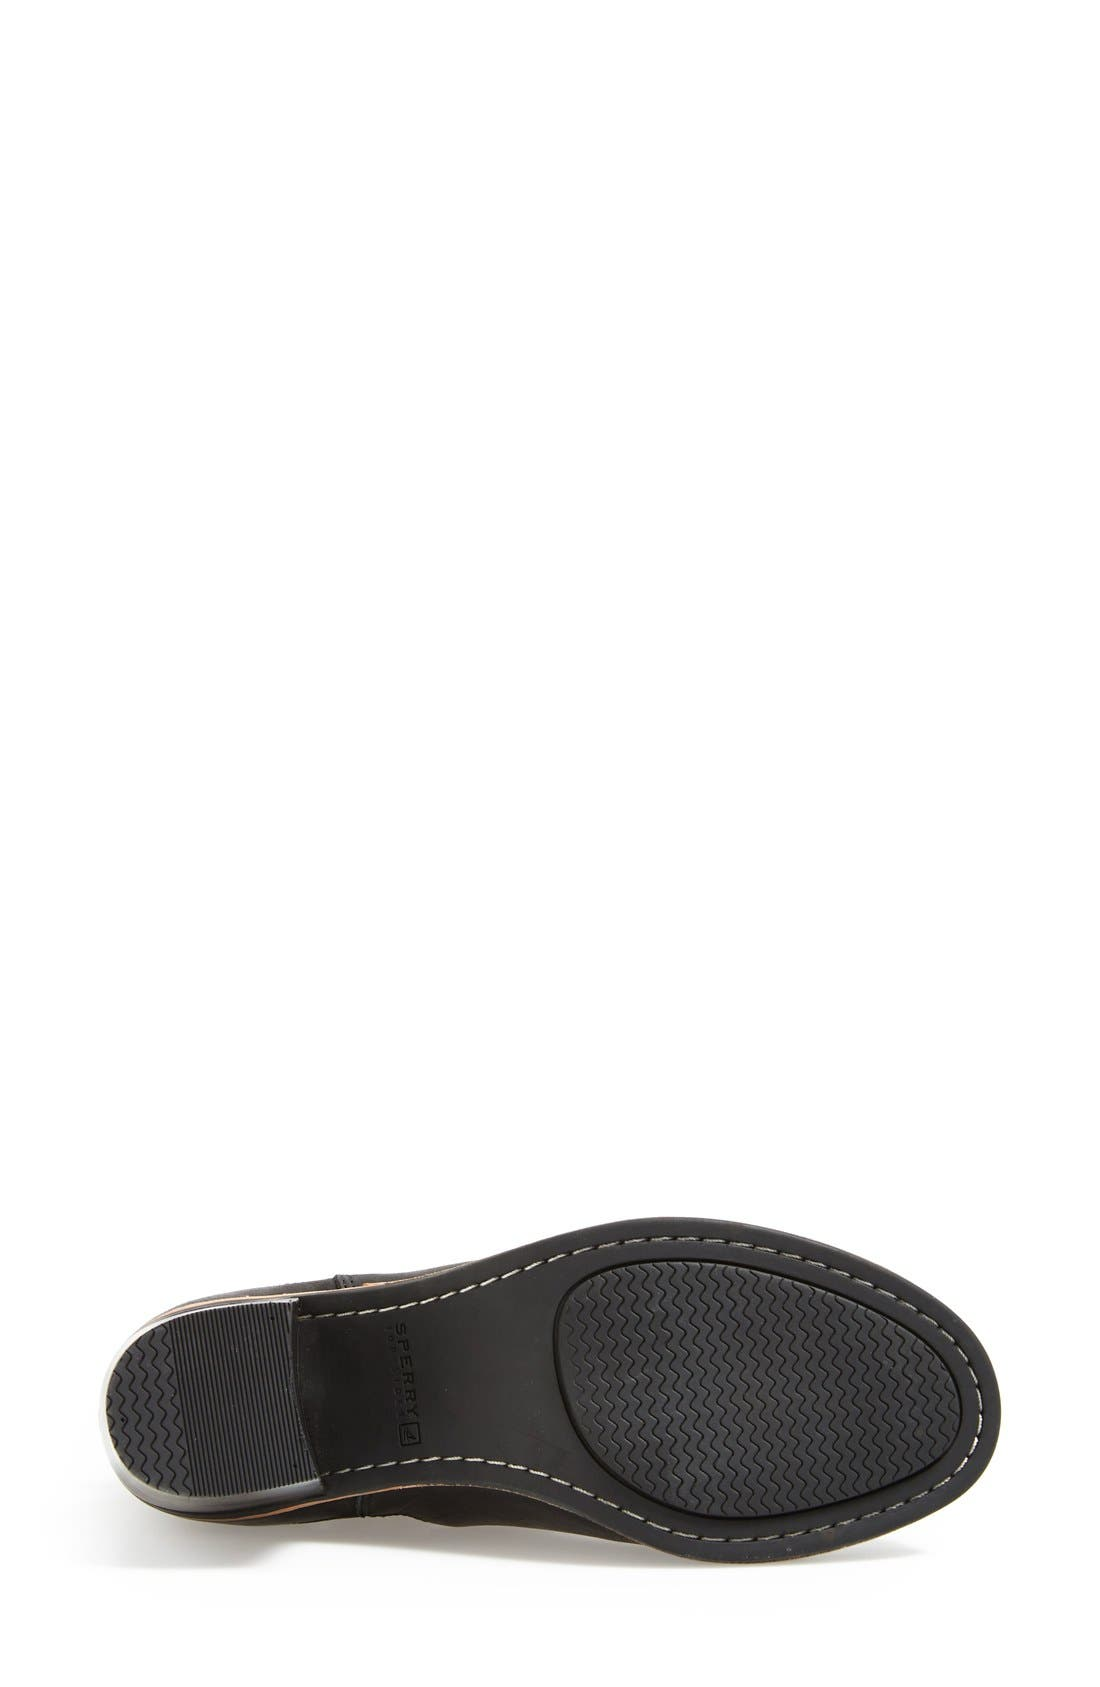 SPERRY,                             Top-Sider<sup>®</sup> 'Liberty' Leather Bootie,                             Alternate thumbnail 2, color,                             001